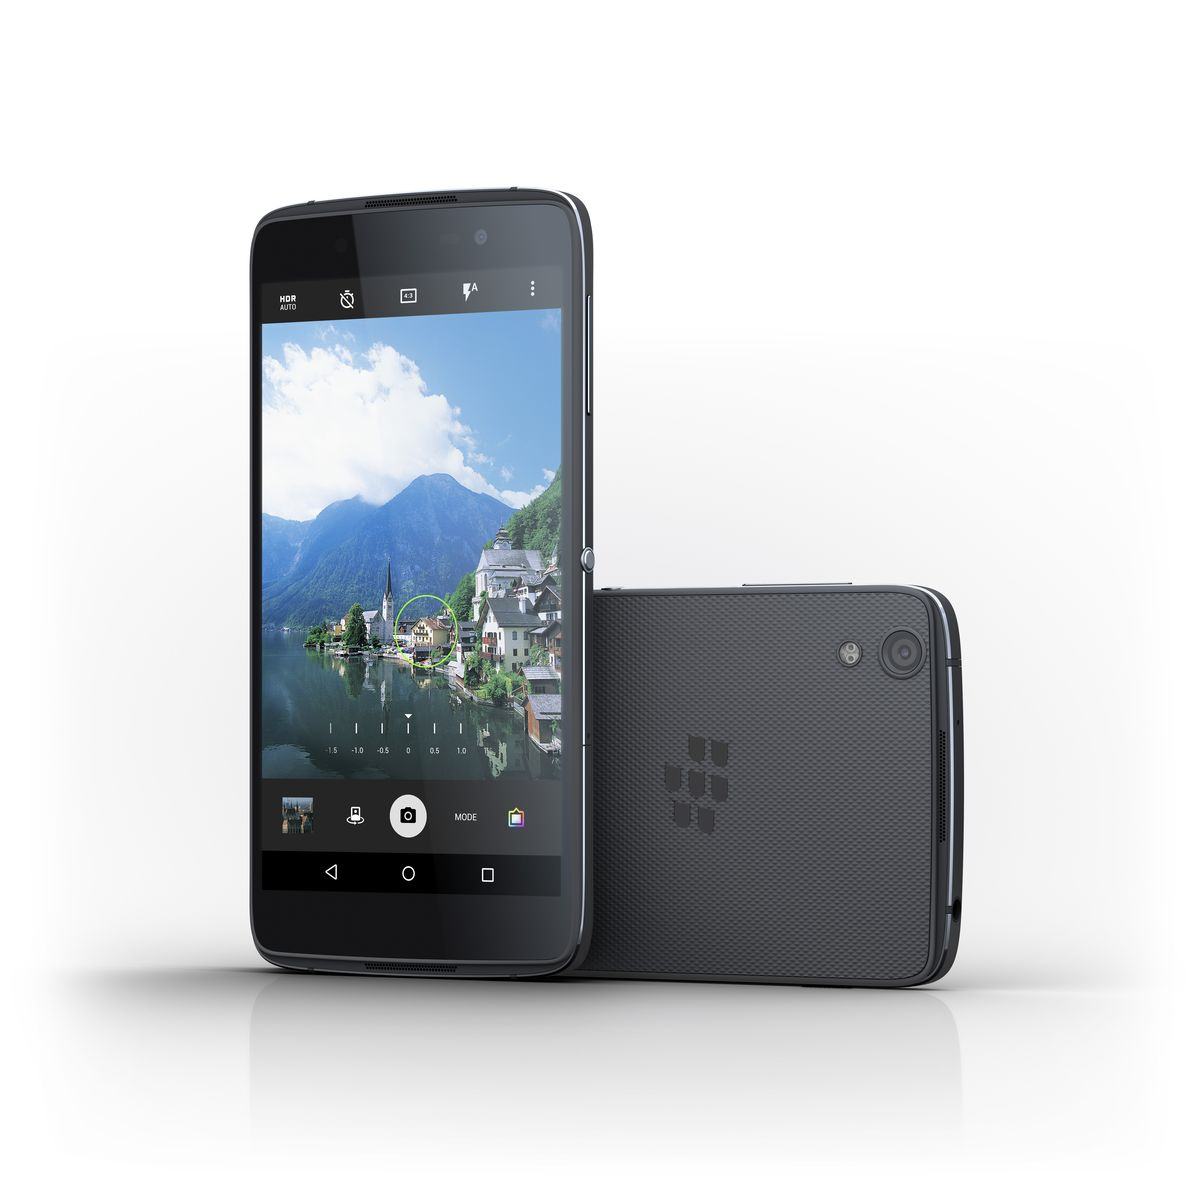 BlackBerry DTEK50: Pre-order the world's most secure smartphone from 11street now